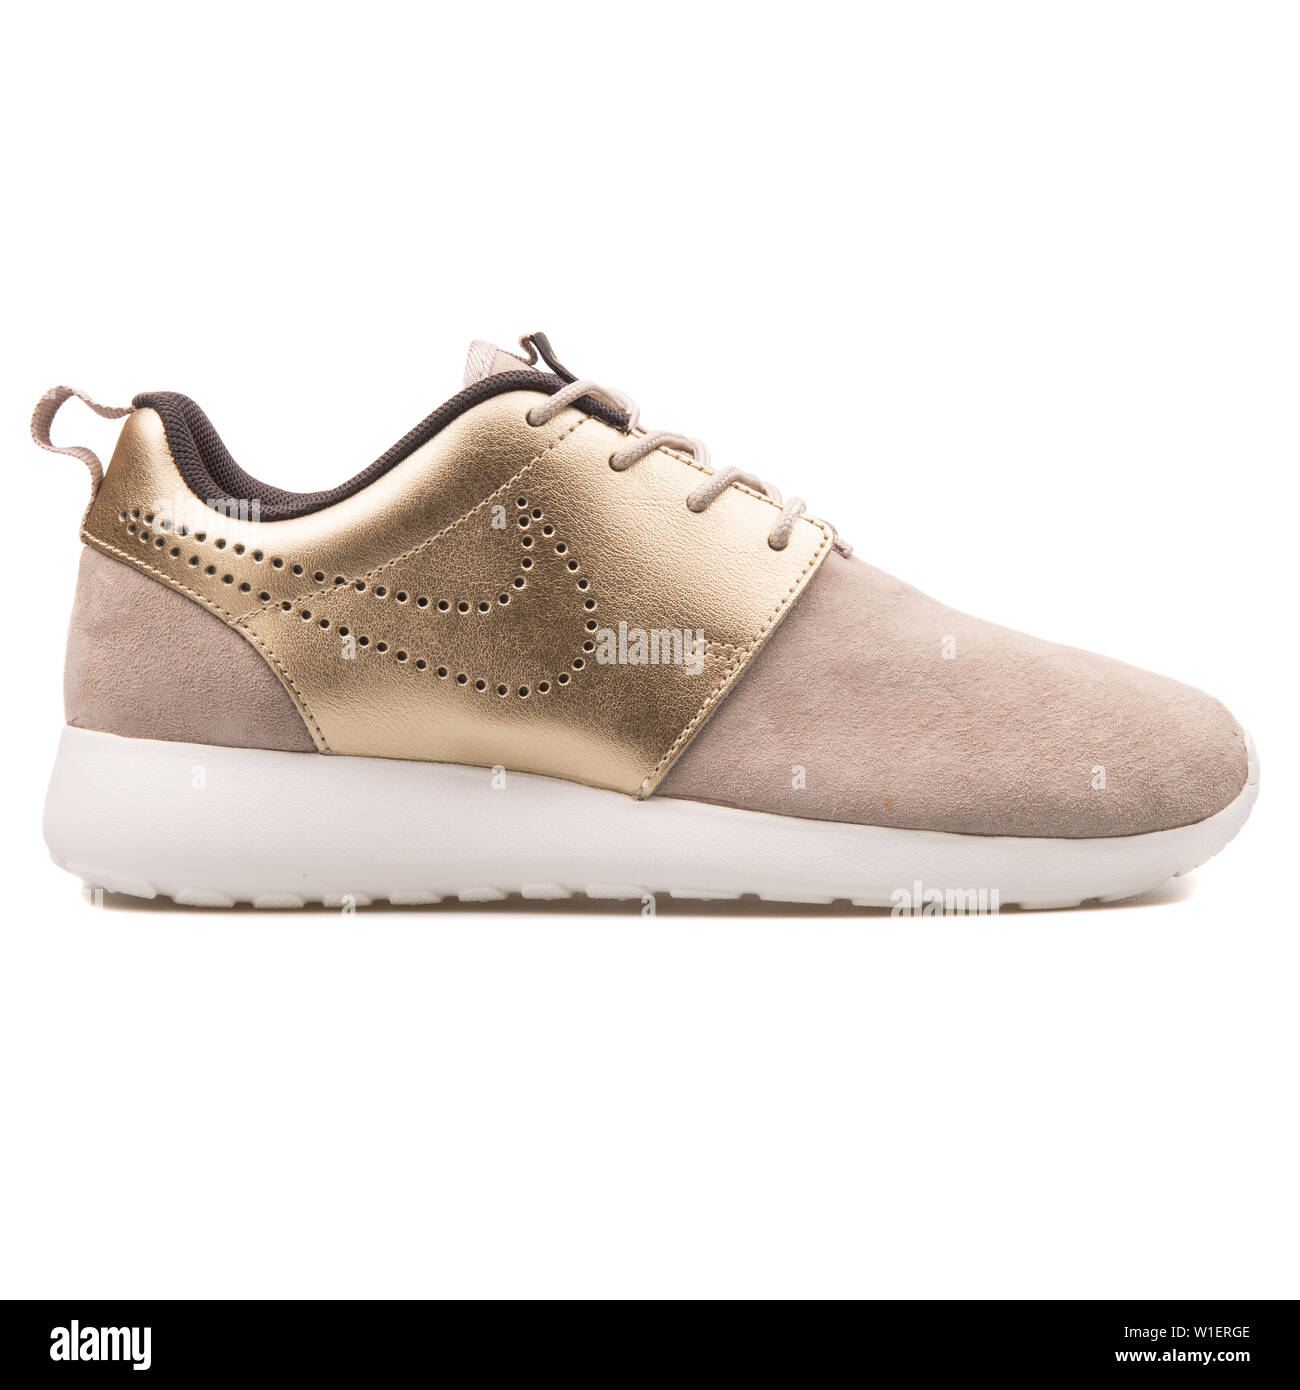 Original Devorar escaldadura  VIENNA, AUSTRIA - AUGUST 10, 2017: Nike Roshe One Premium Suede beige and  gold sneaker on white background Stock Photo - Alamy